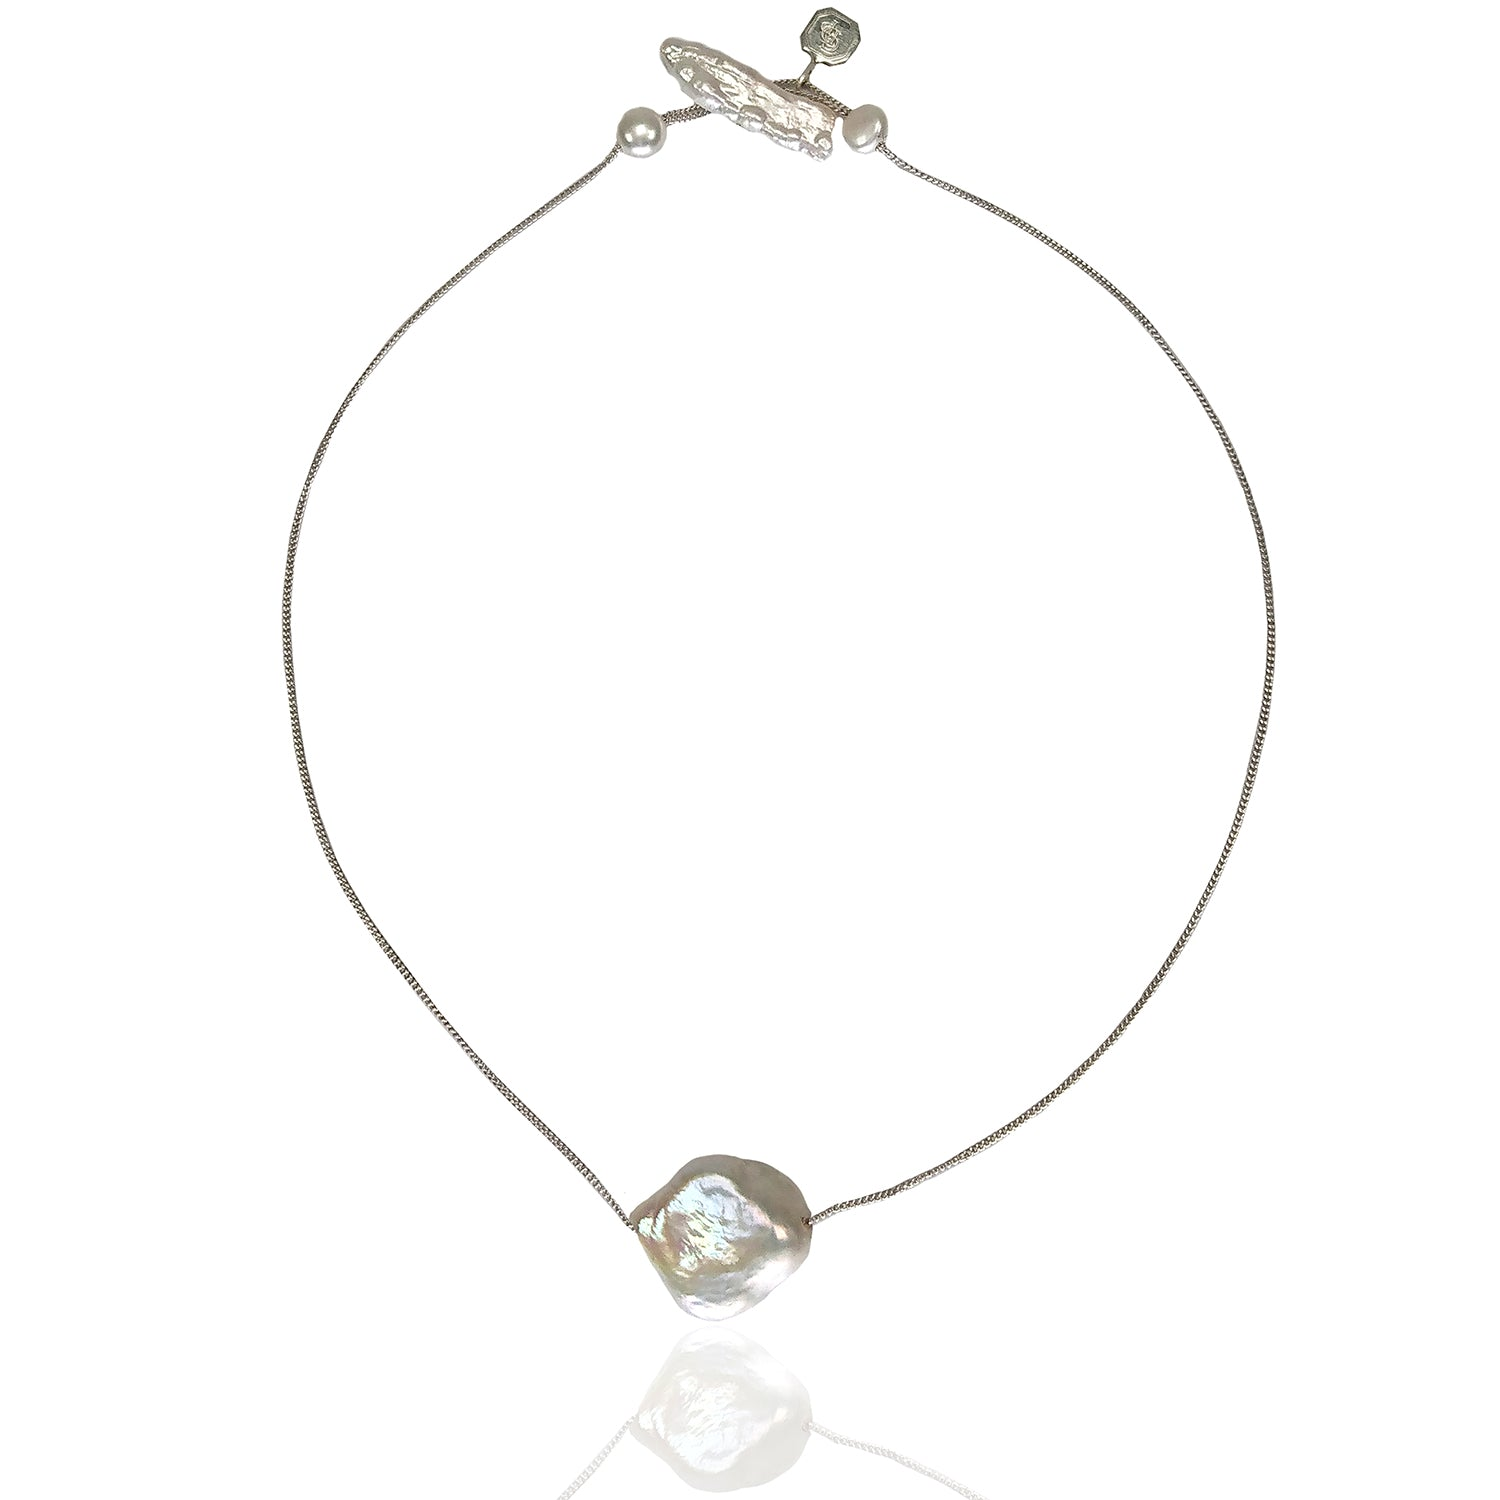 Baroque shape single Freshwater Pearl on silver chain necklace